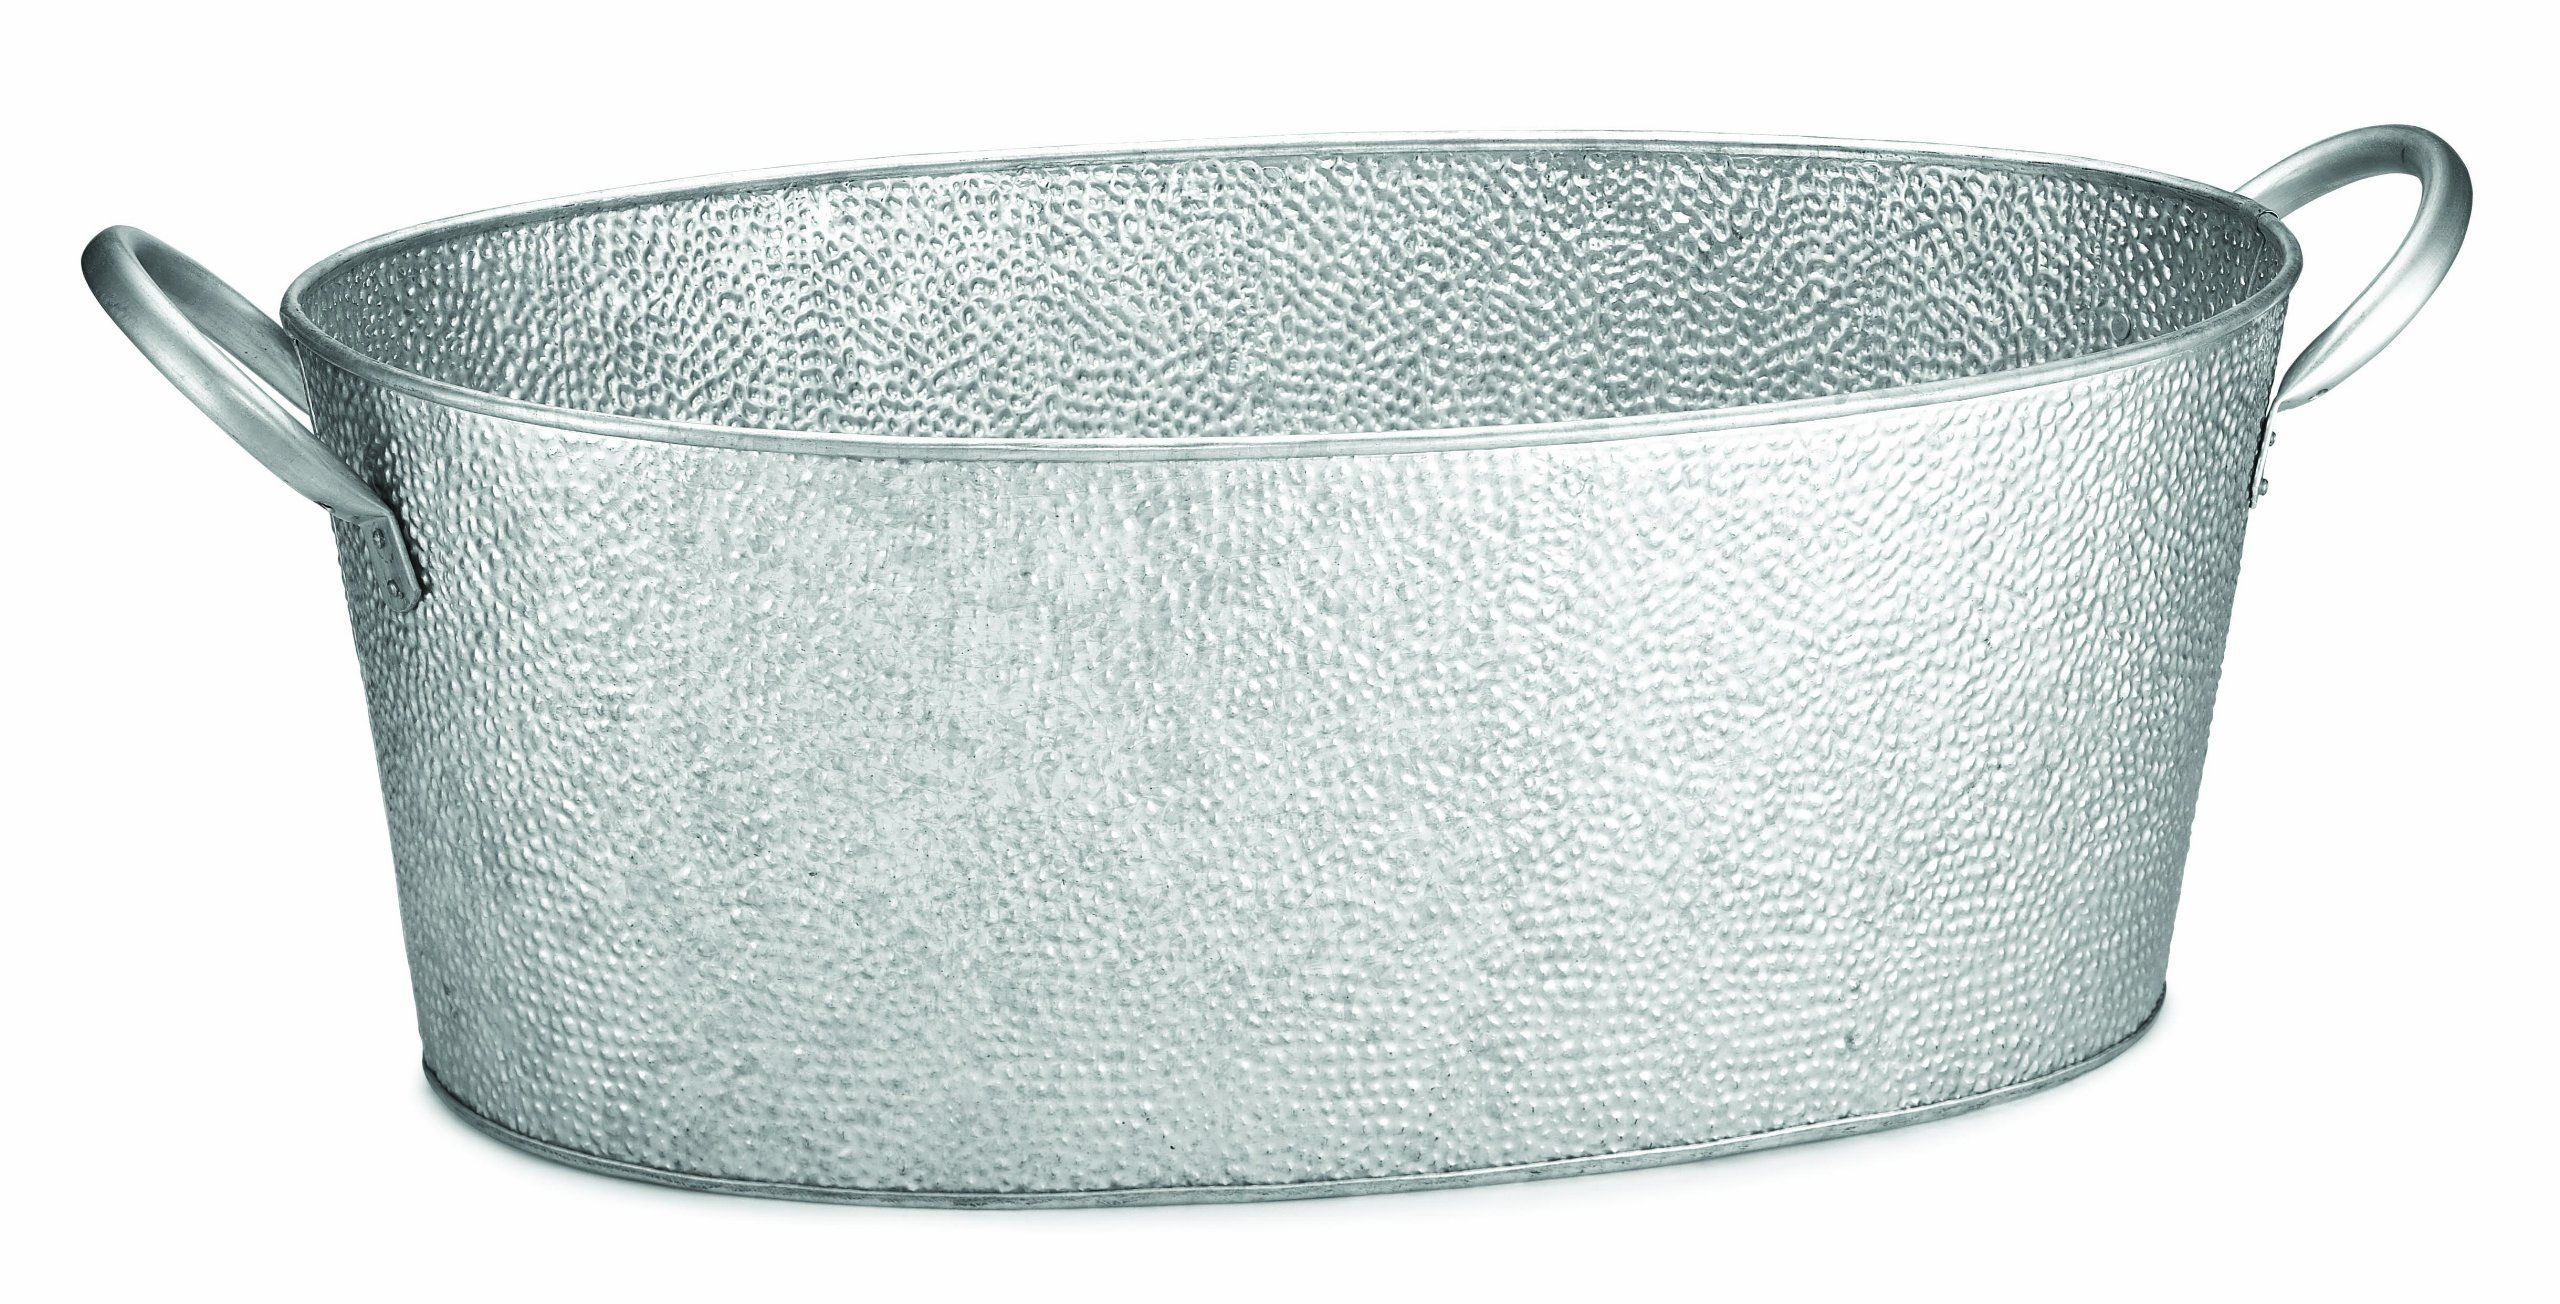 Tablecraft Gt2313 Oval Beverage Tub Galvanized Pebbled Texture 22